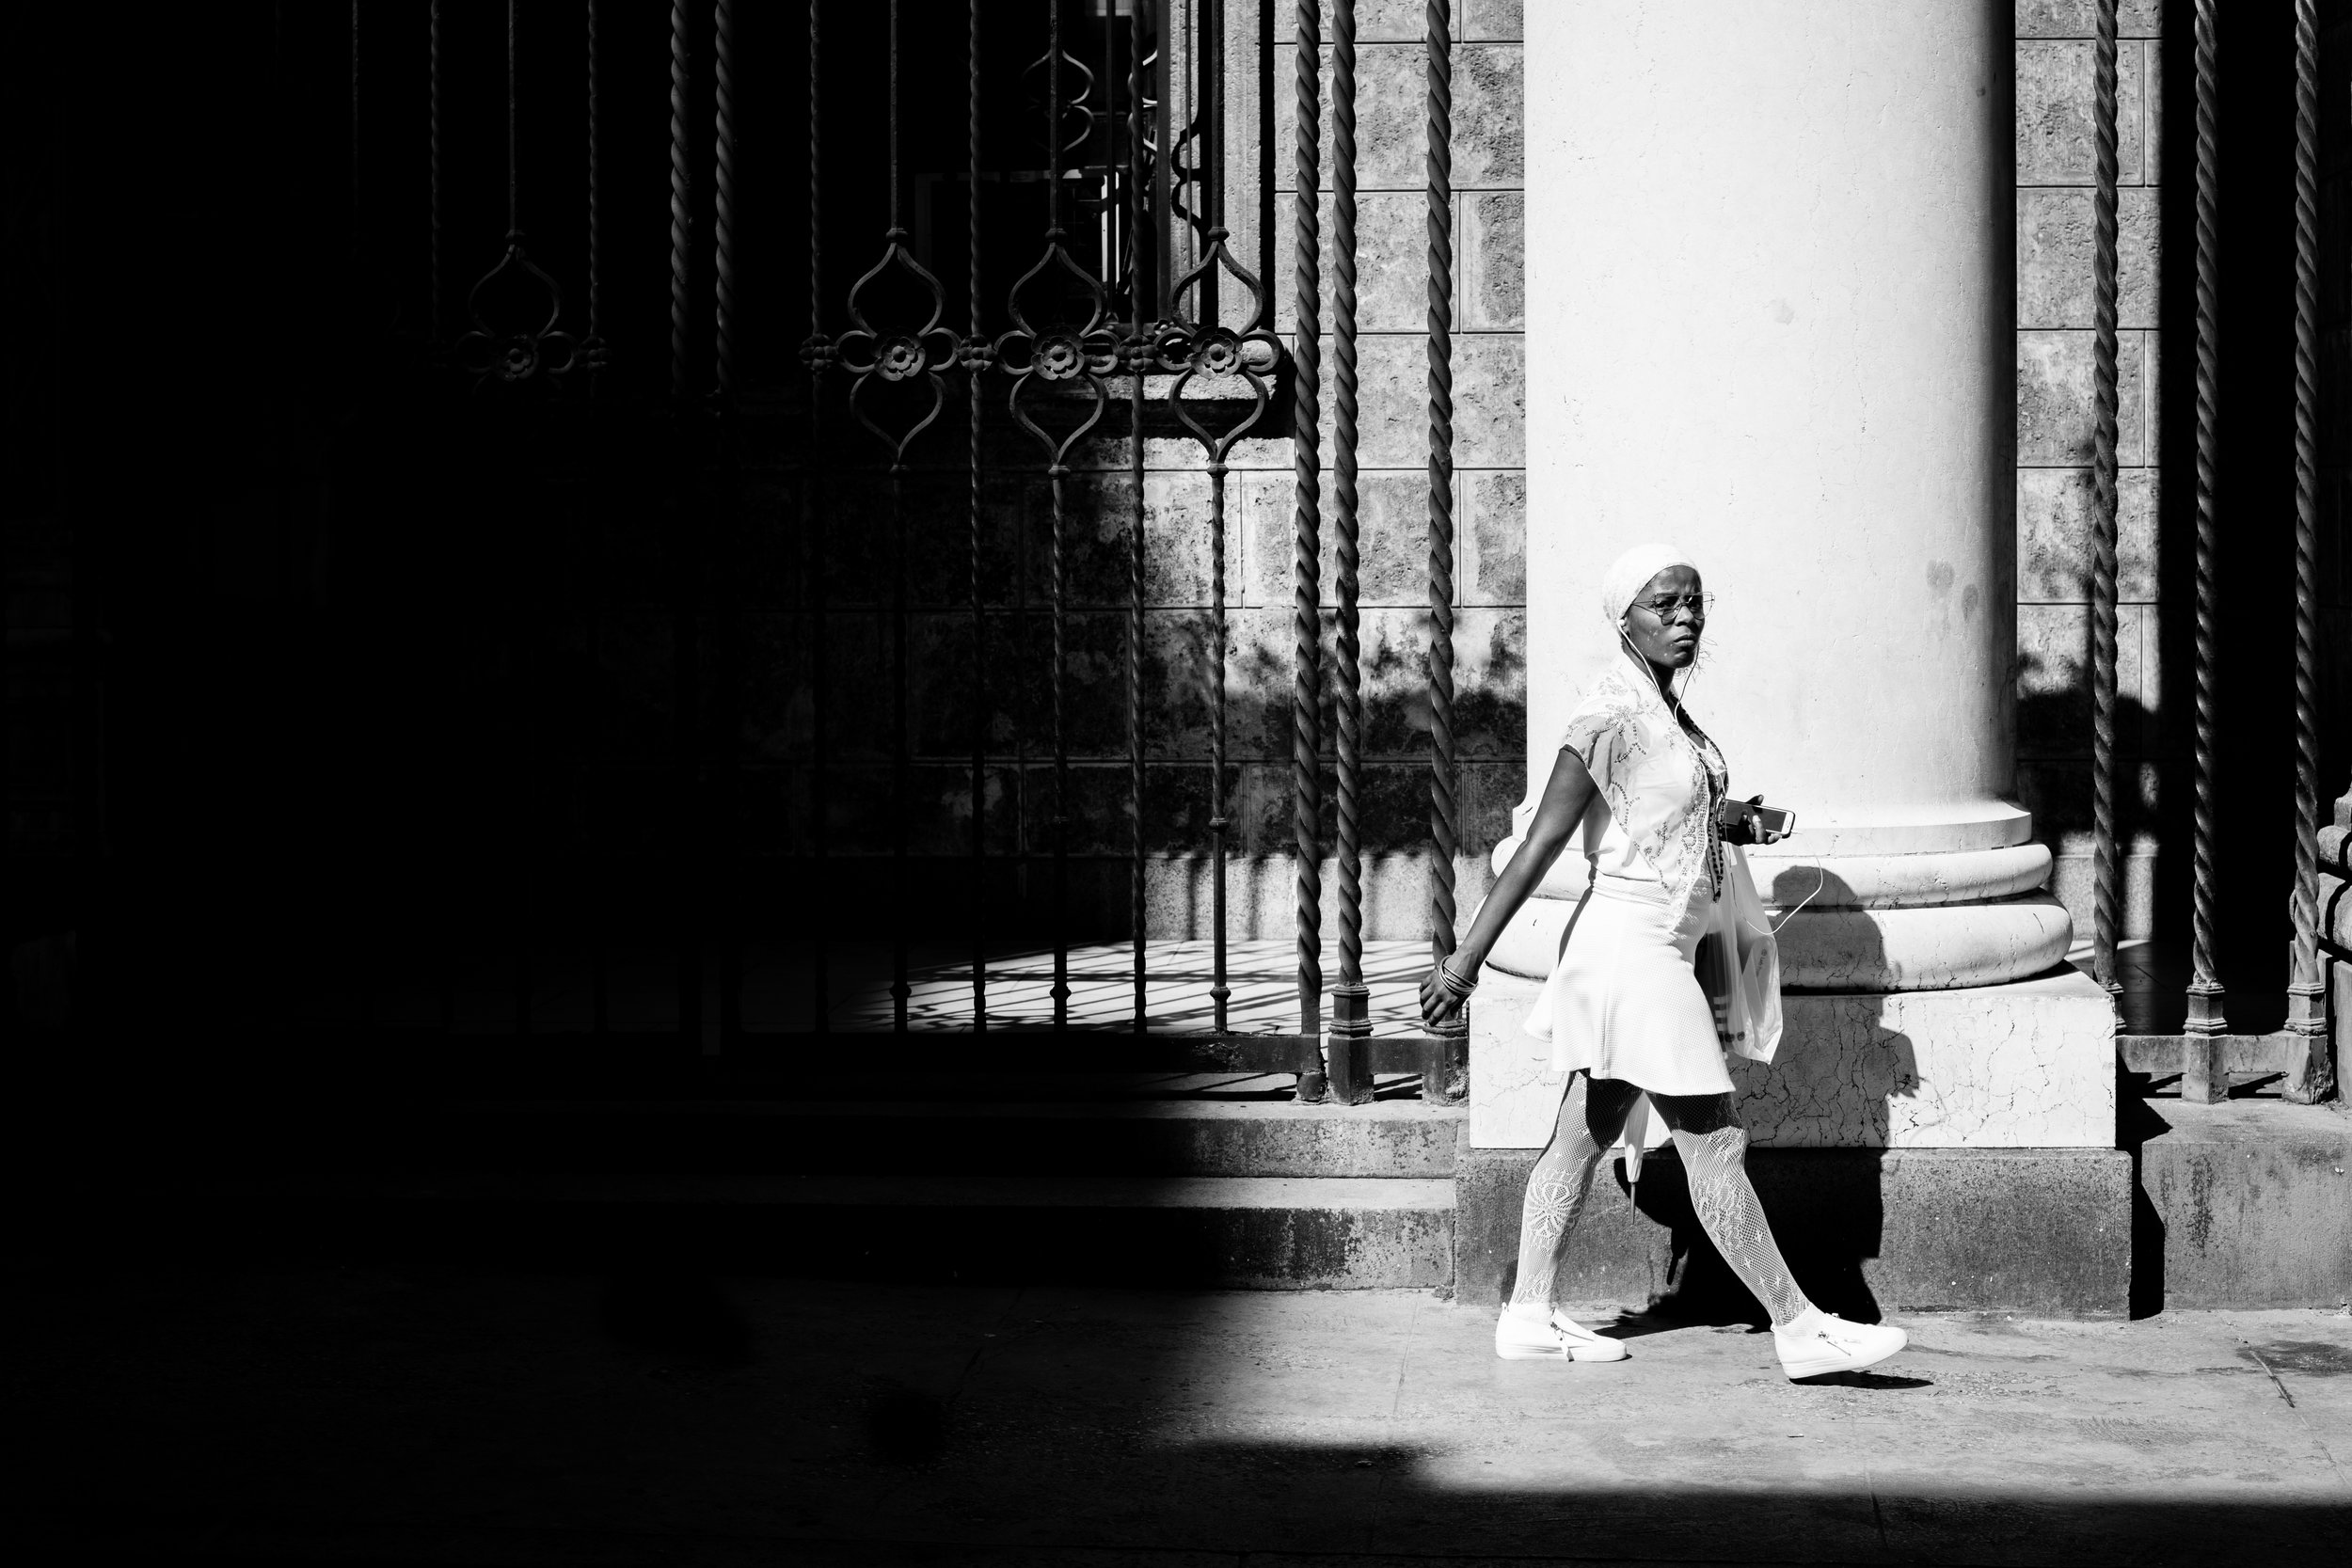 Using shadows to create a frame within a frame in La Habana, Cuba.